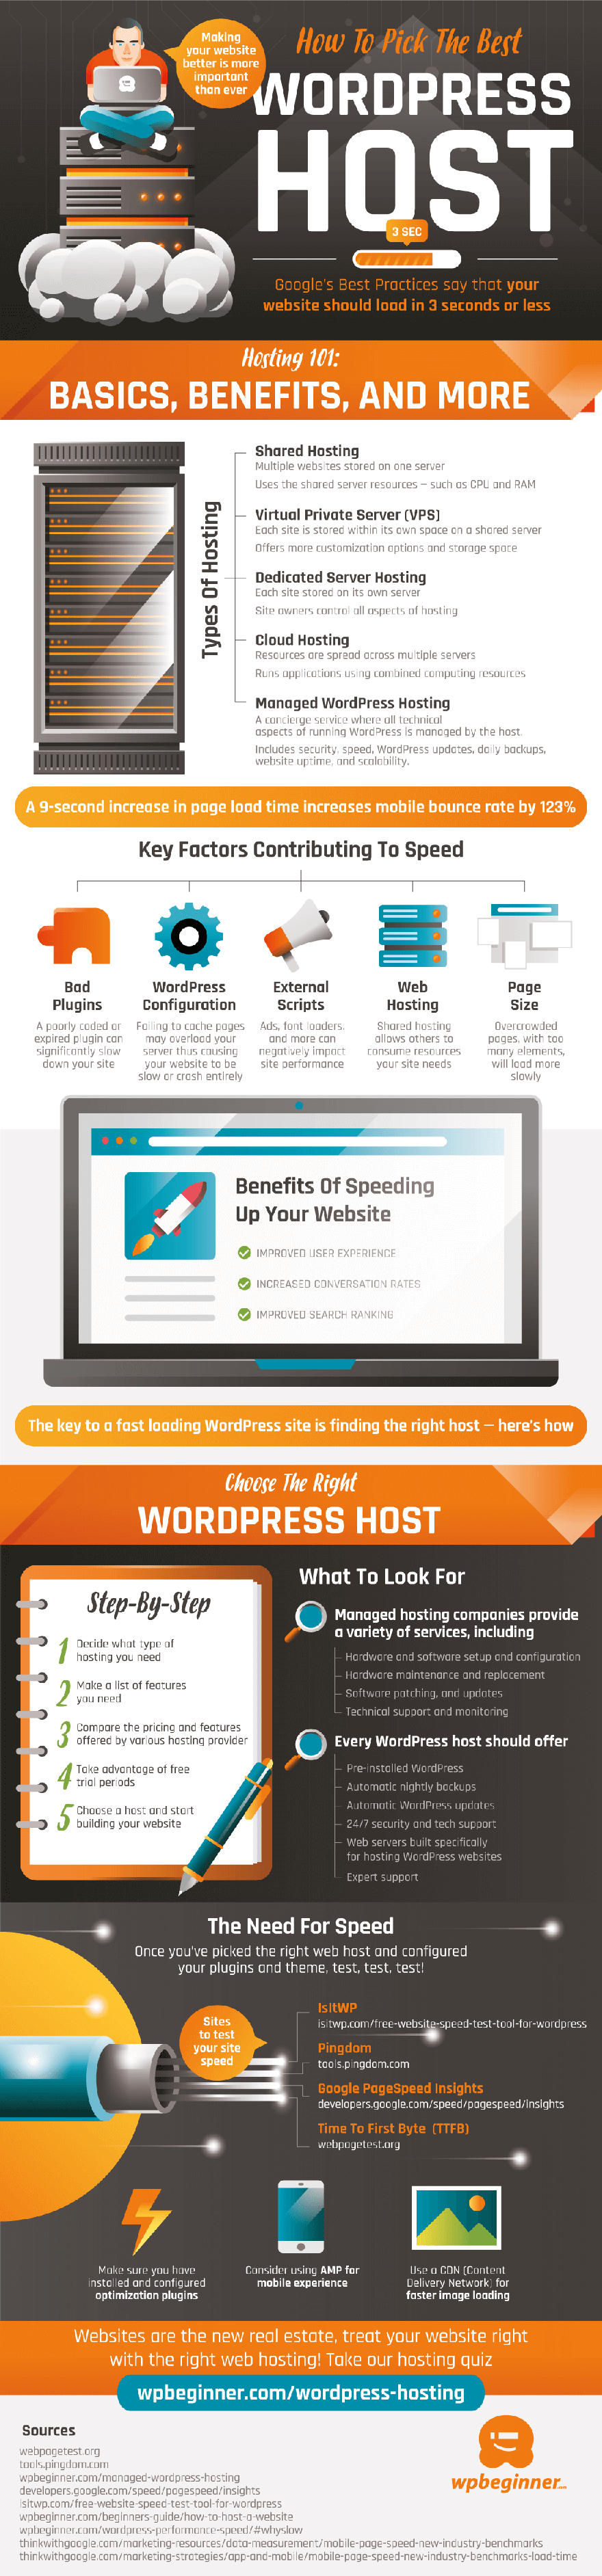 Infographic on how to choose the best WordPress Hosting